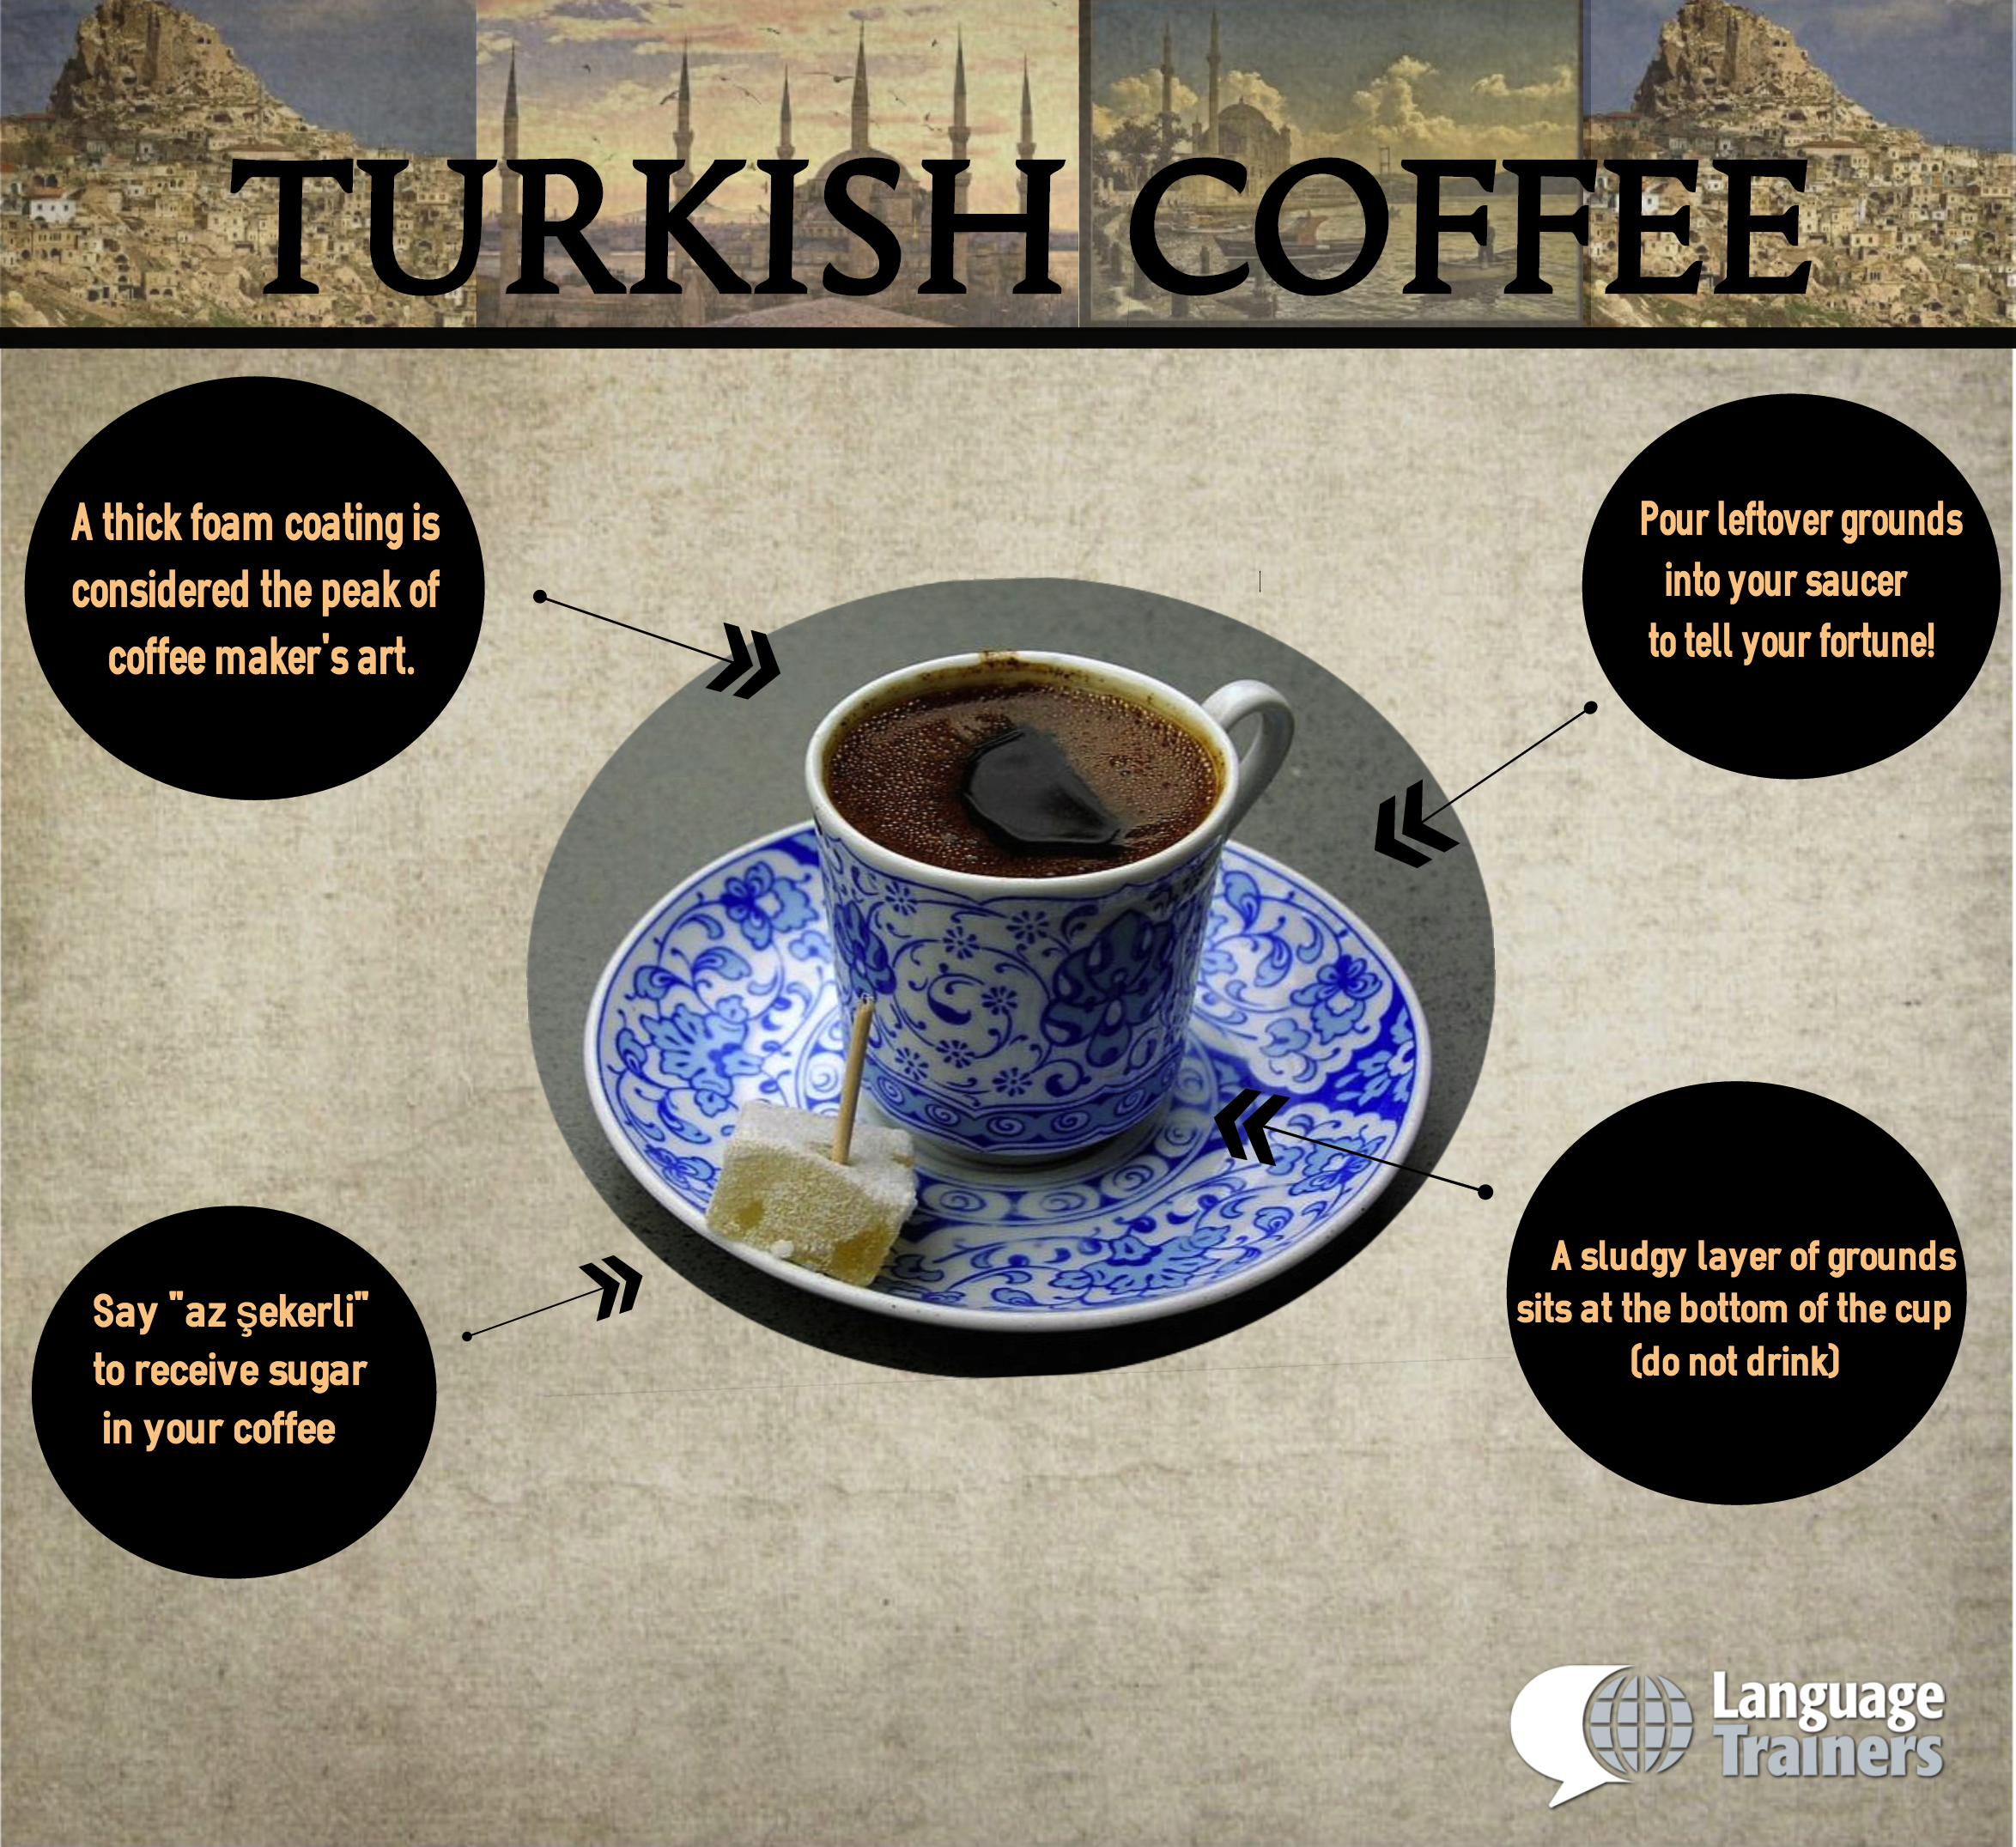 Turkeys tea and coffee traditions cultural facts drinking tips or simply learning more about this luscious countrys culture and language contact language trainers before getting your hands on a cup of coffee or buycottarizona Image collections